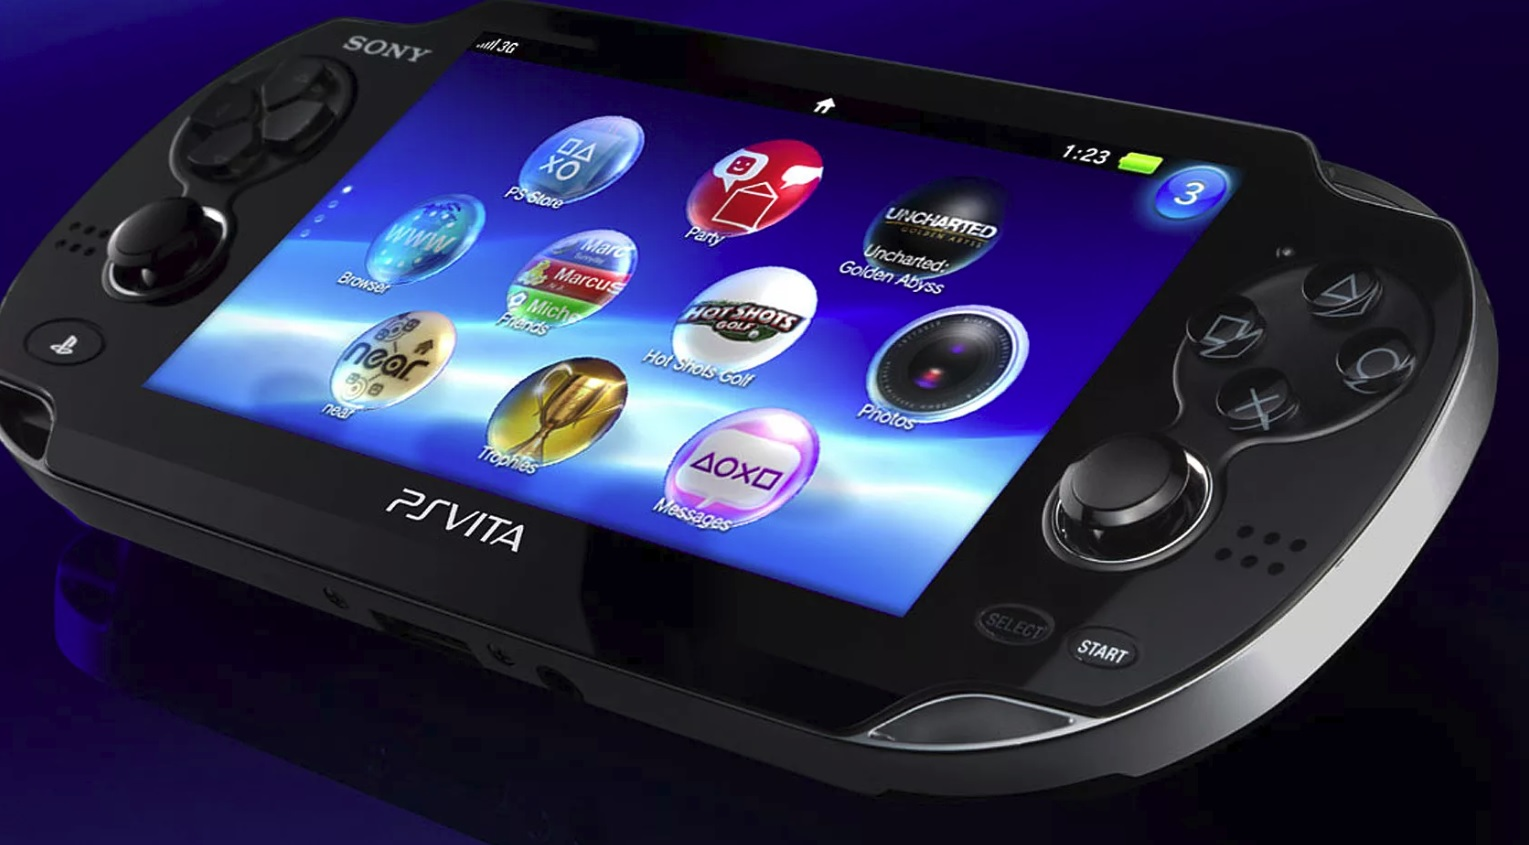 Despite the Vita's failure in the west, Sony CEO hints they could return to the portable game screenshot